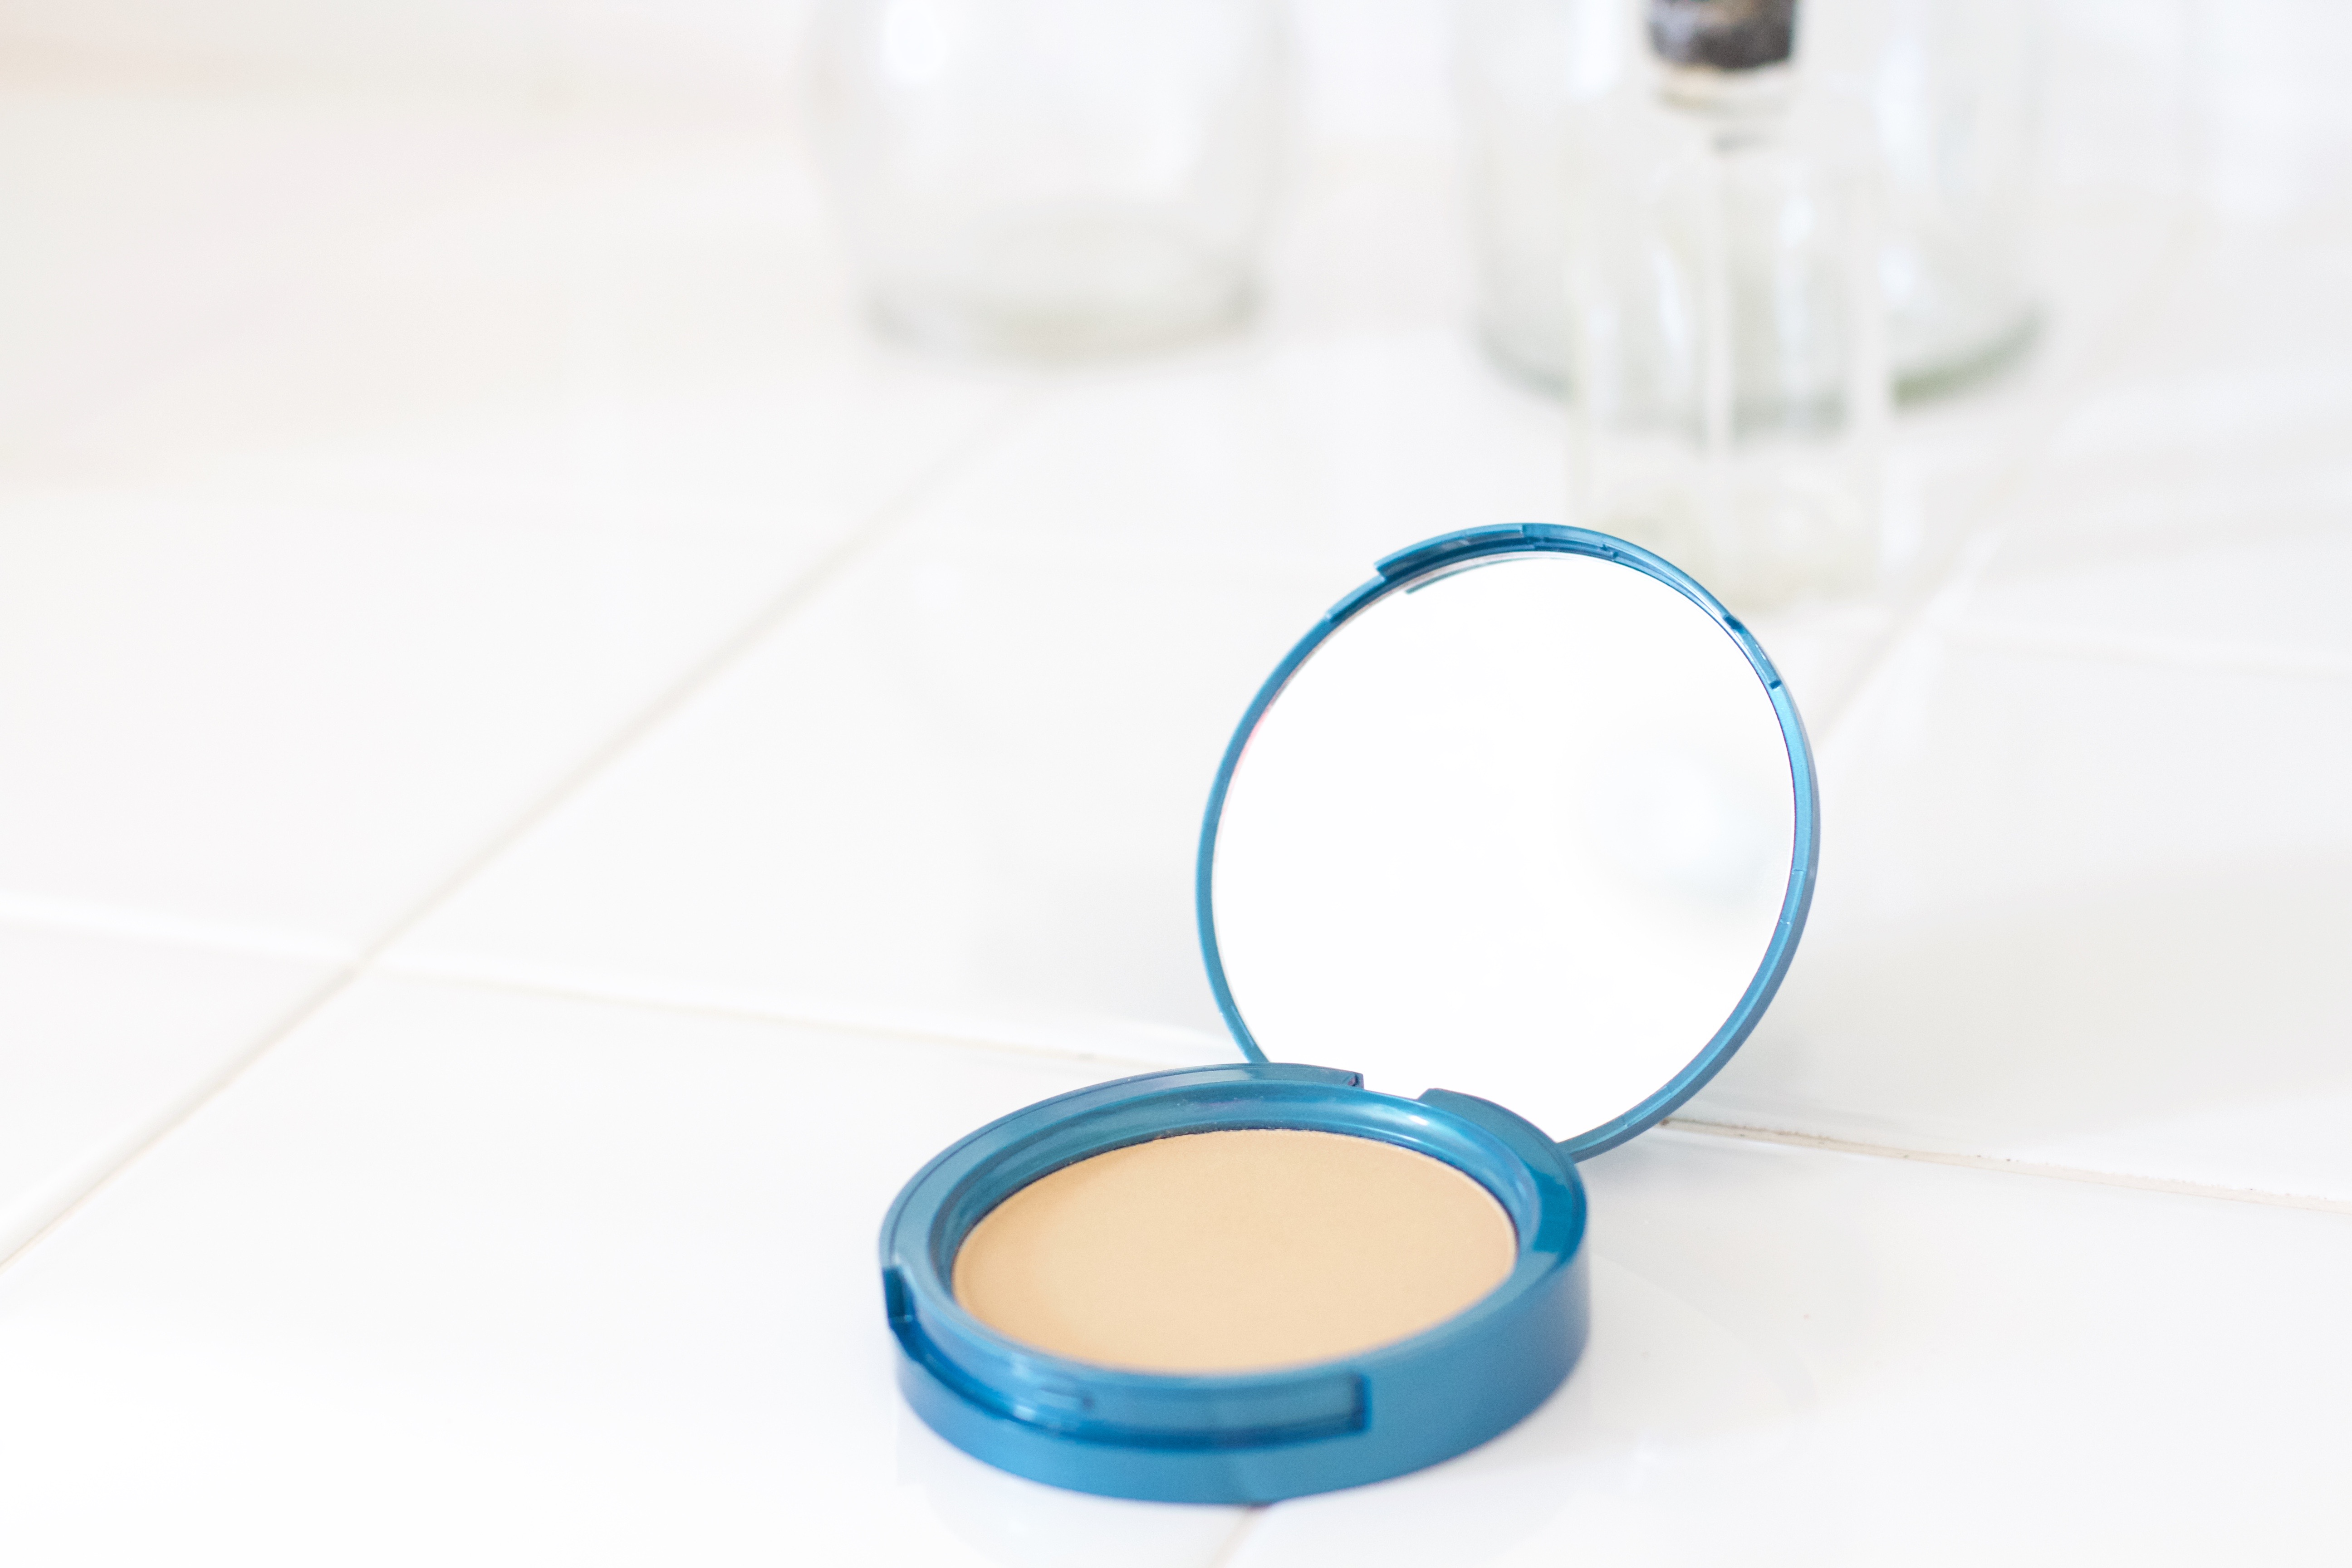 colorscience pressed foundation